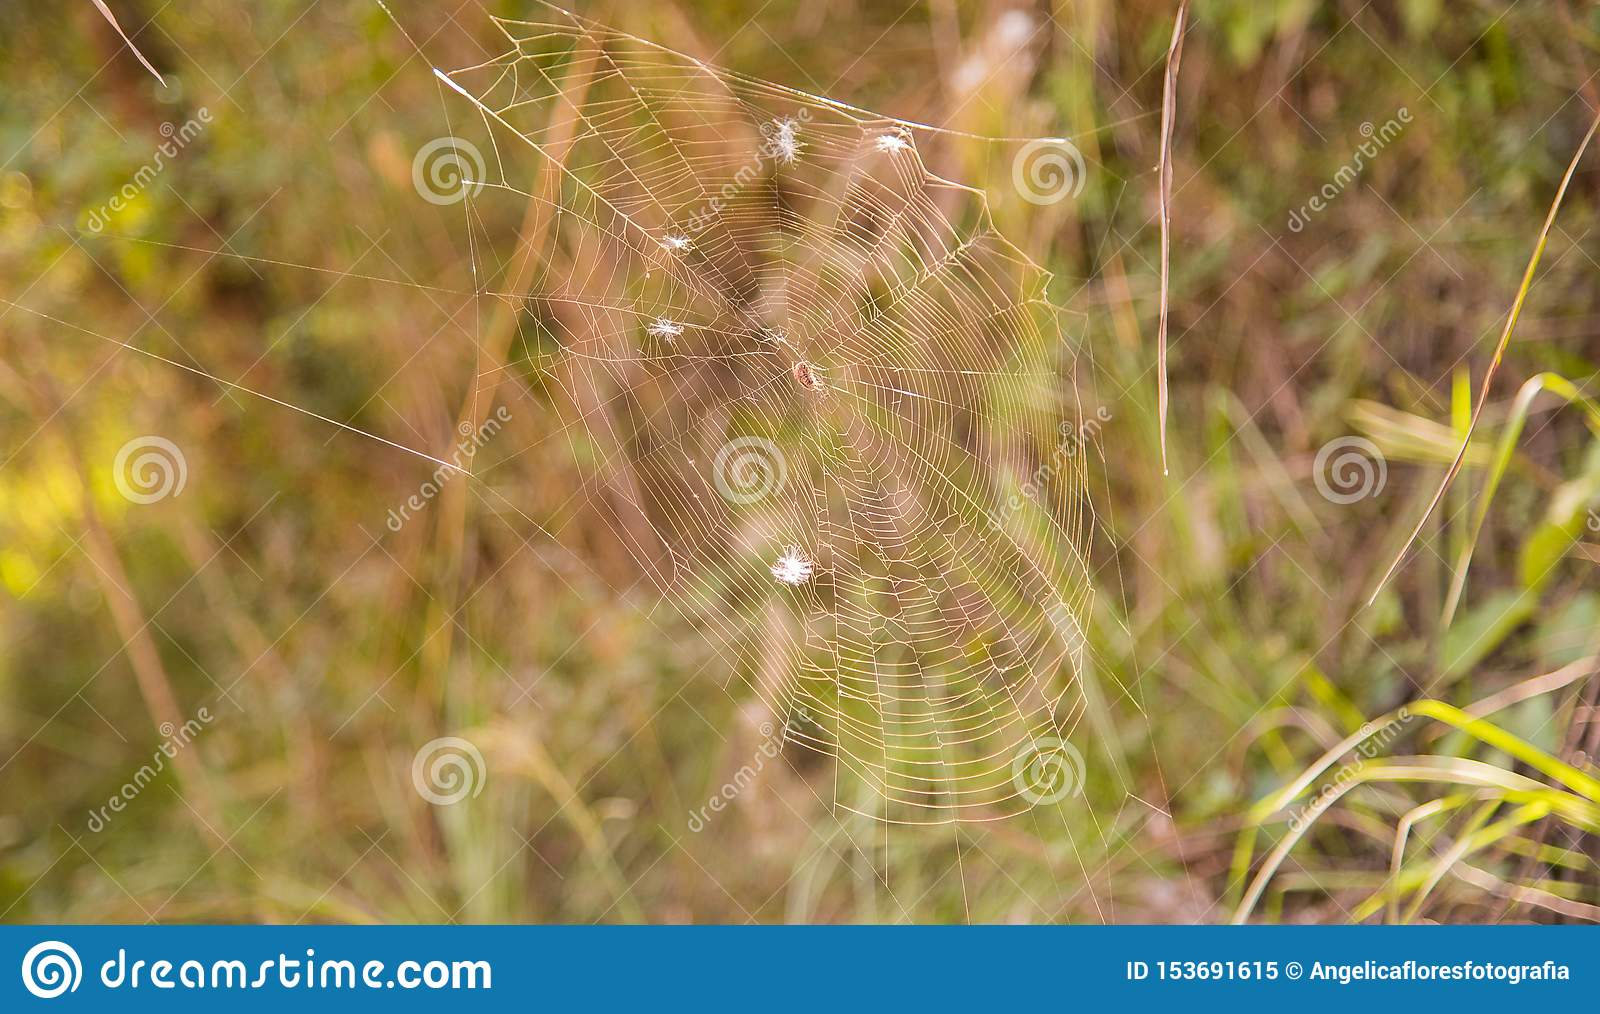 Spider and his morning web